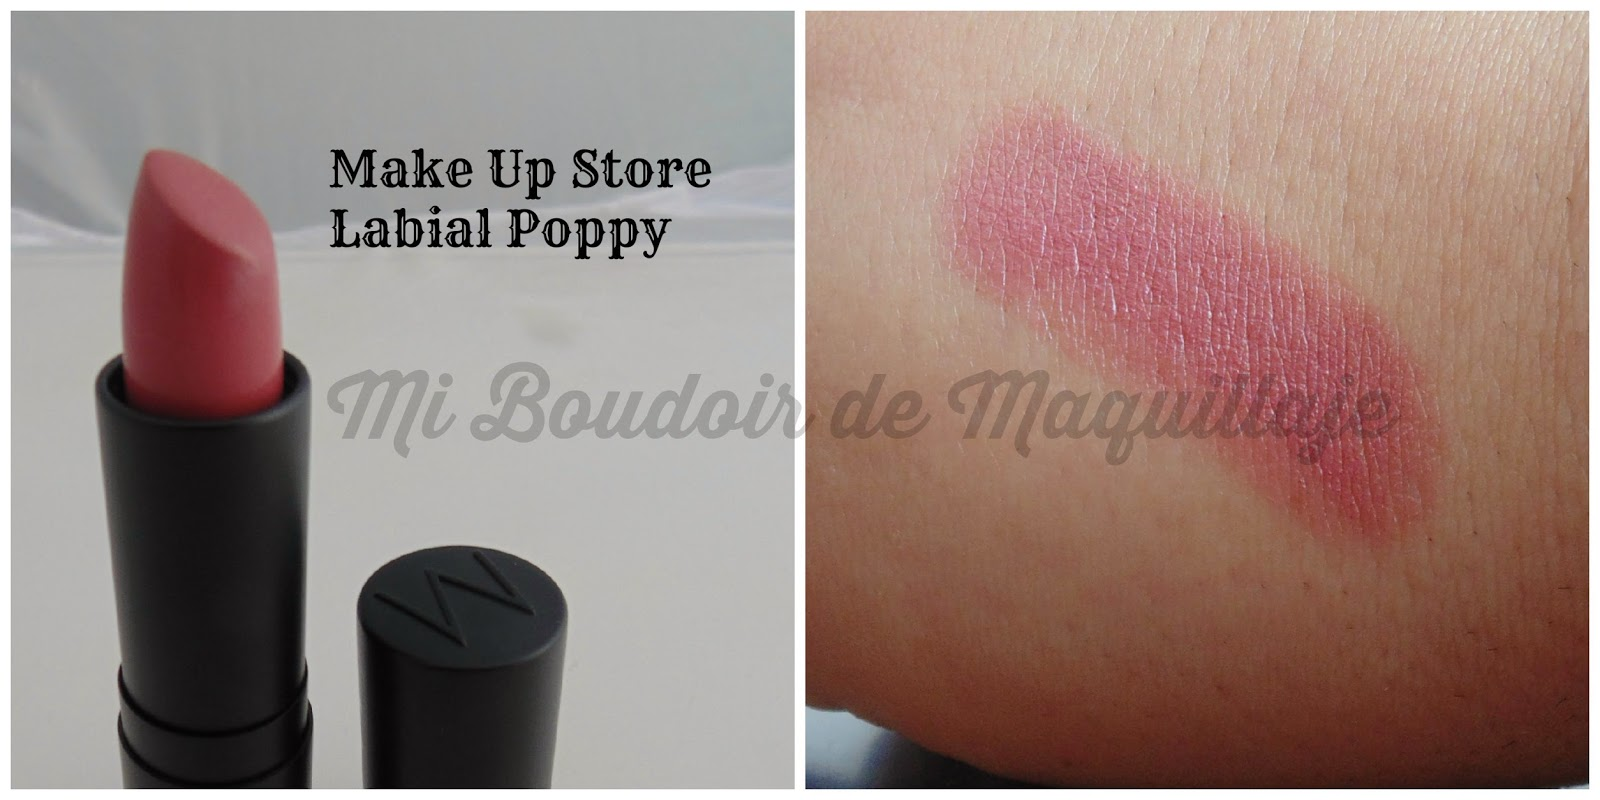 LABIAL POPPY MAKE UP STORE